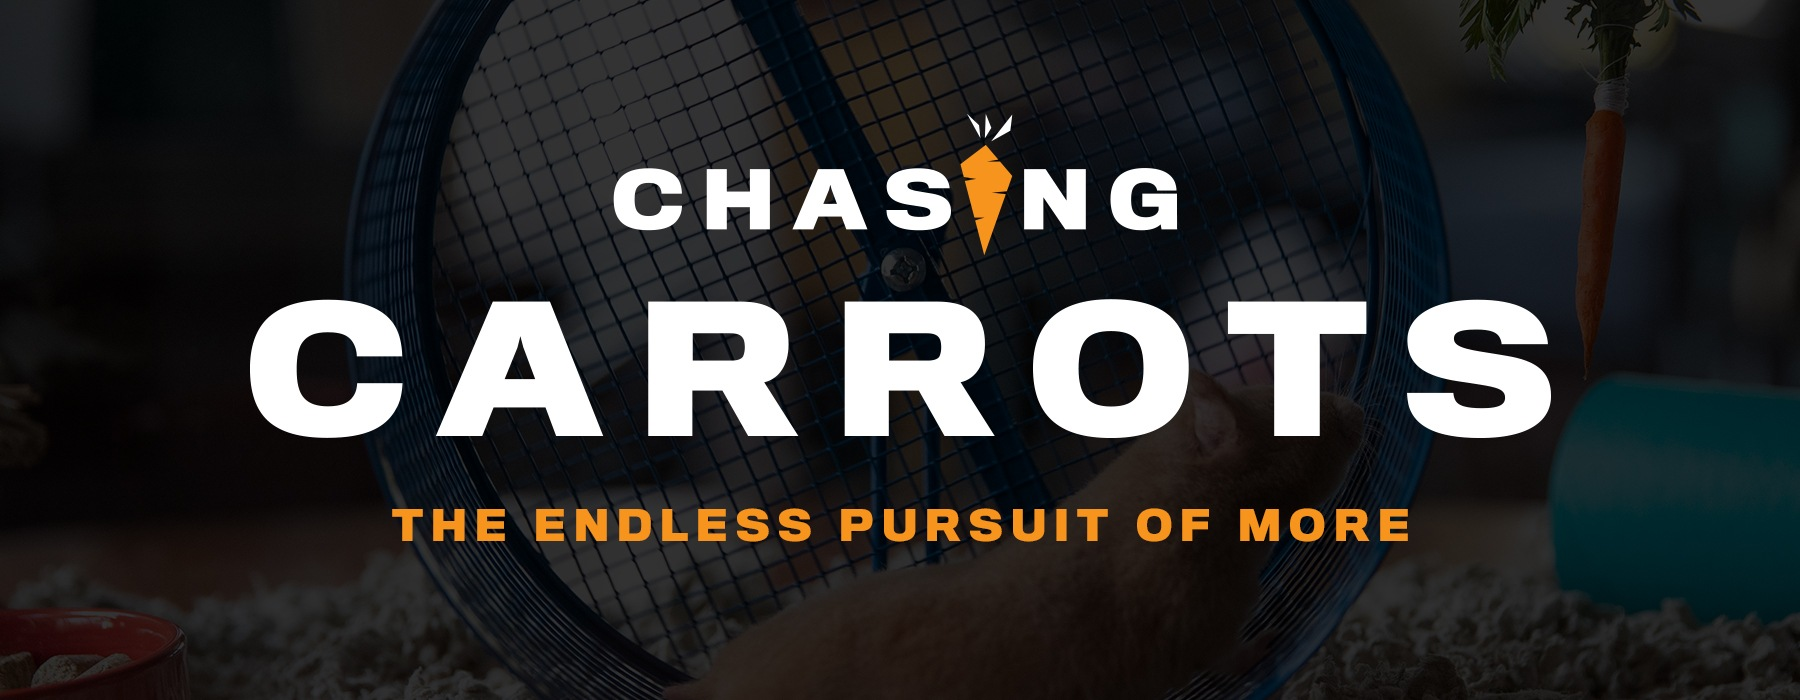 Chasing Carrots